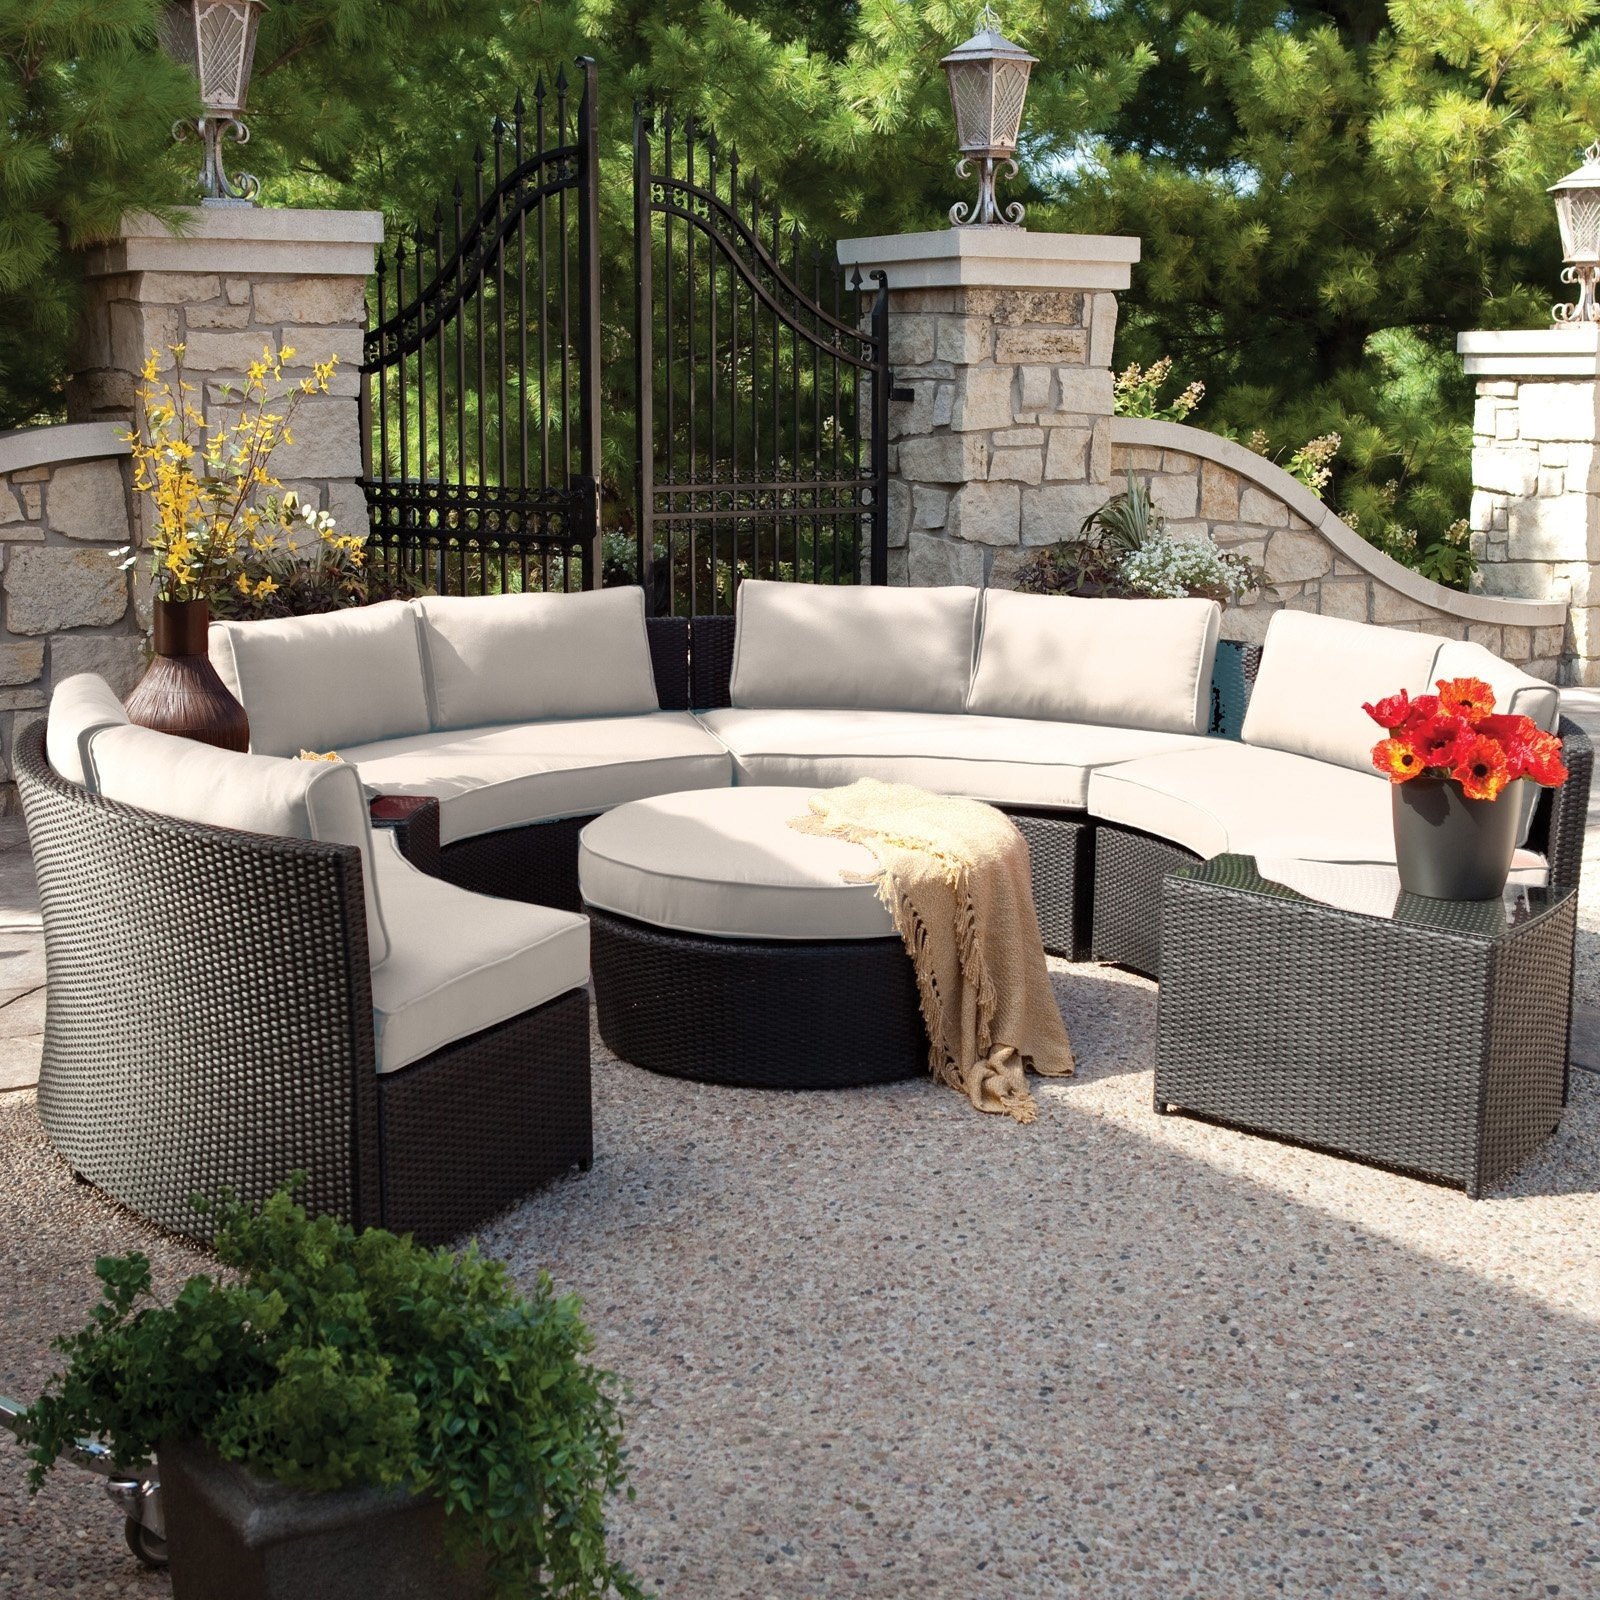 Belham Living Meridian Round Outdoor Wicker Patio Furniture Set With Regarding Recent Patio Conversation Sets With Sunbrella Cushions (View 3 of 15)